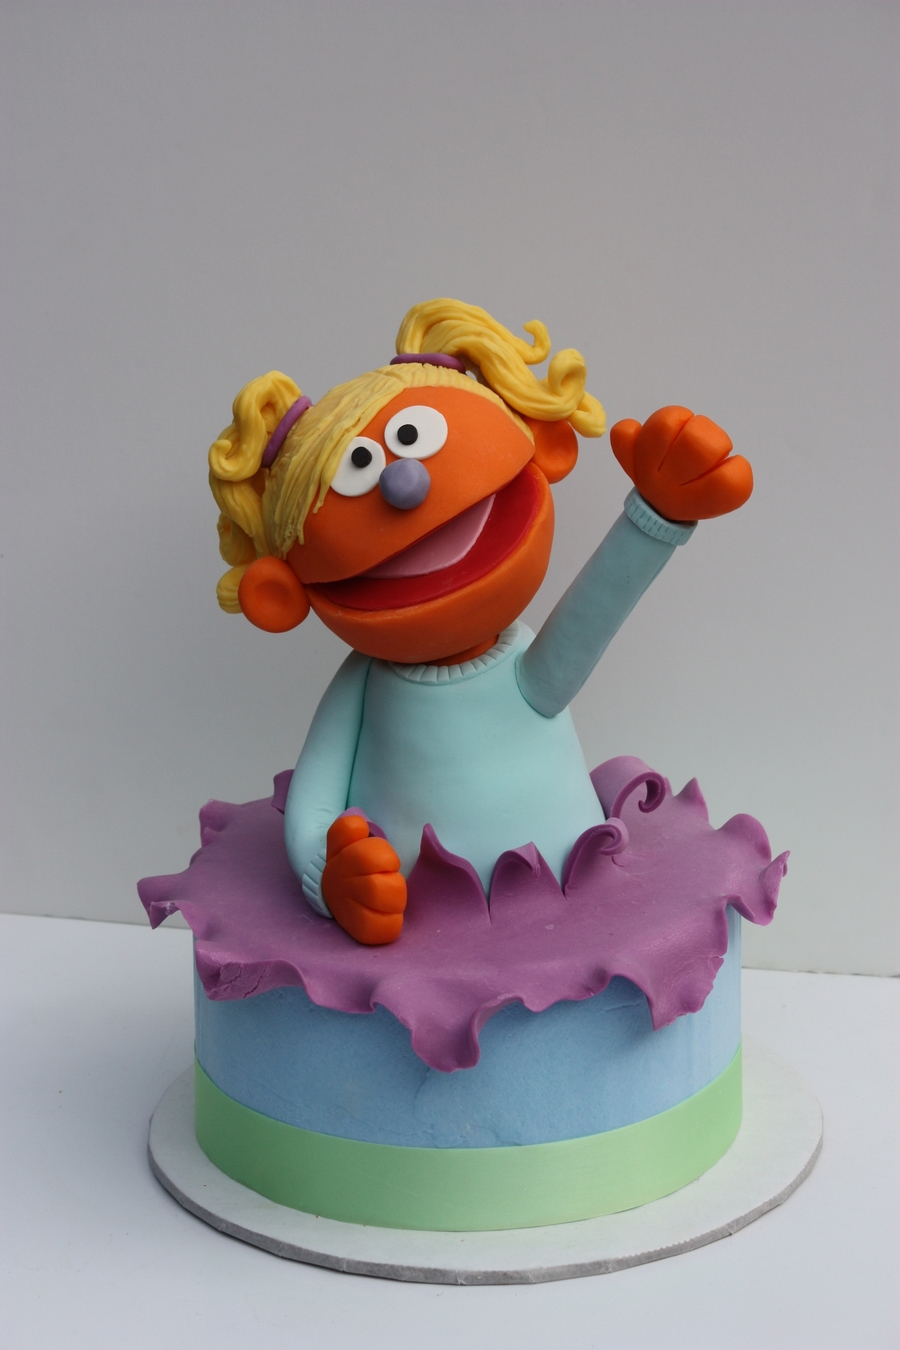 My Muppet on Cake Central